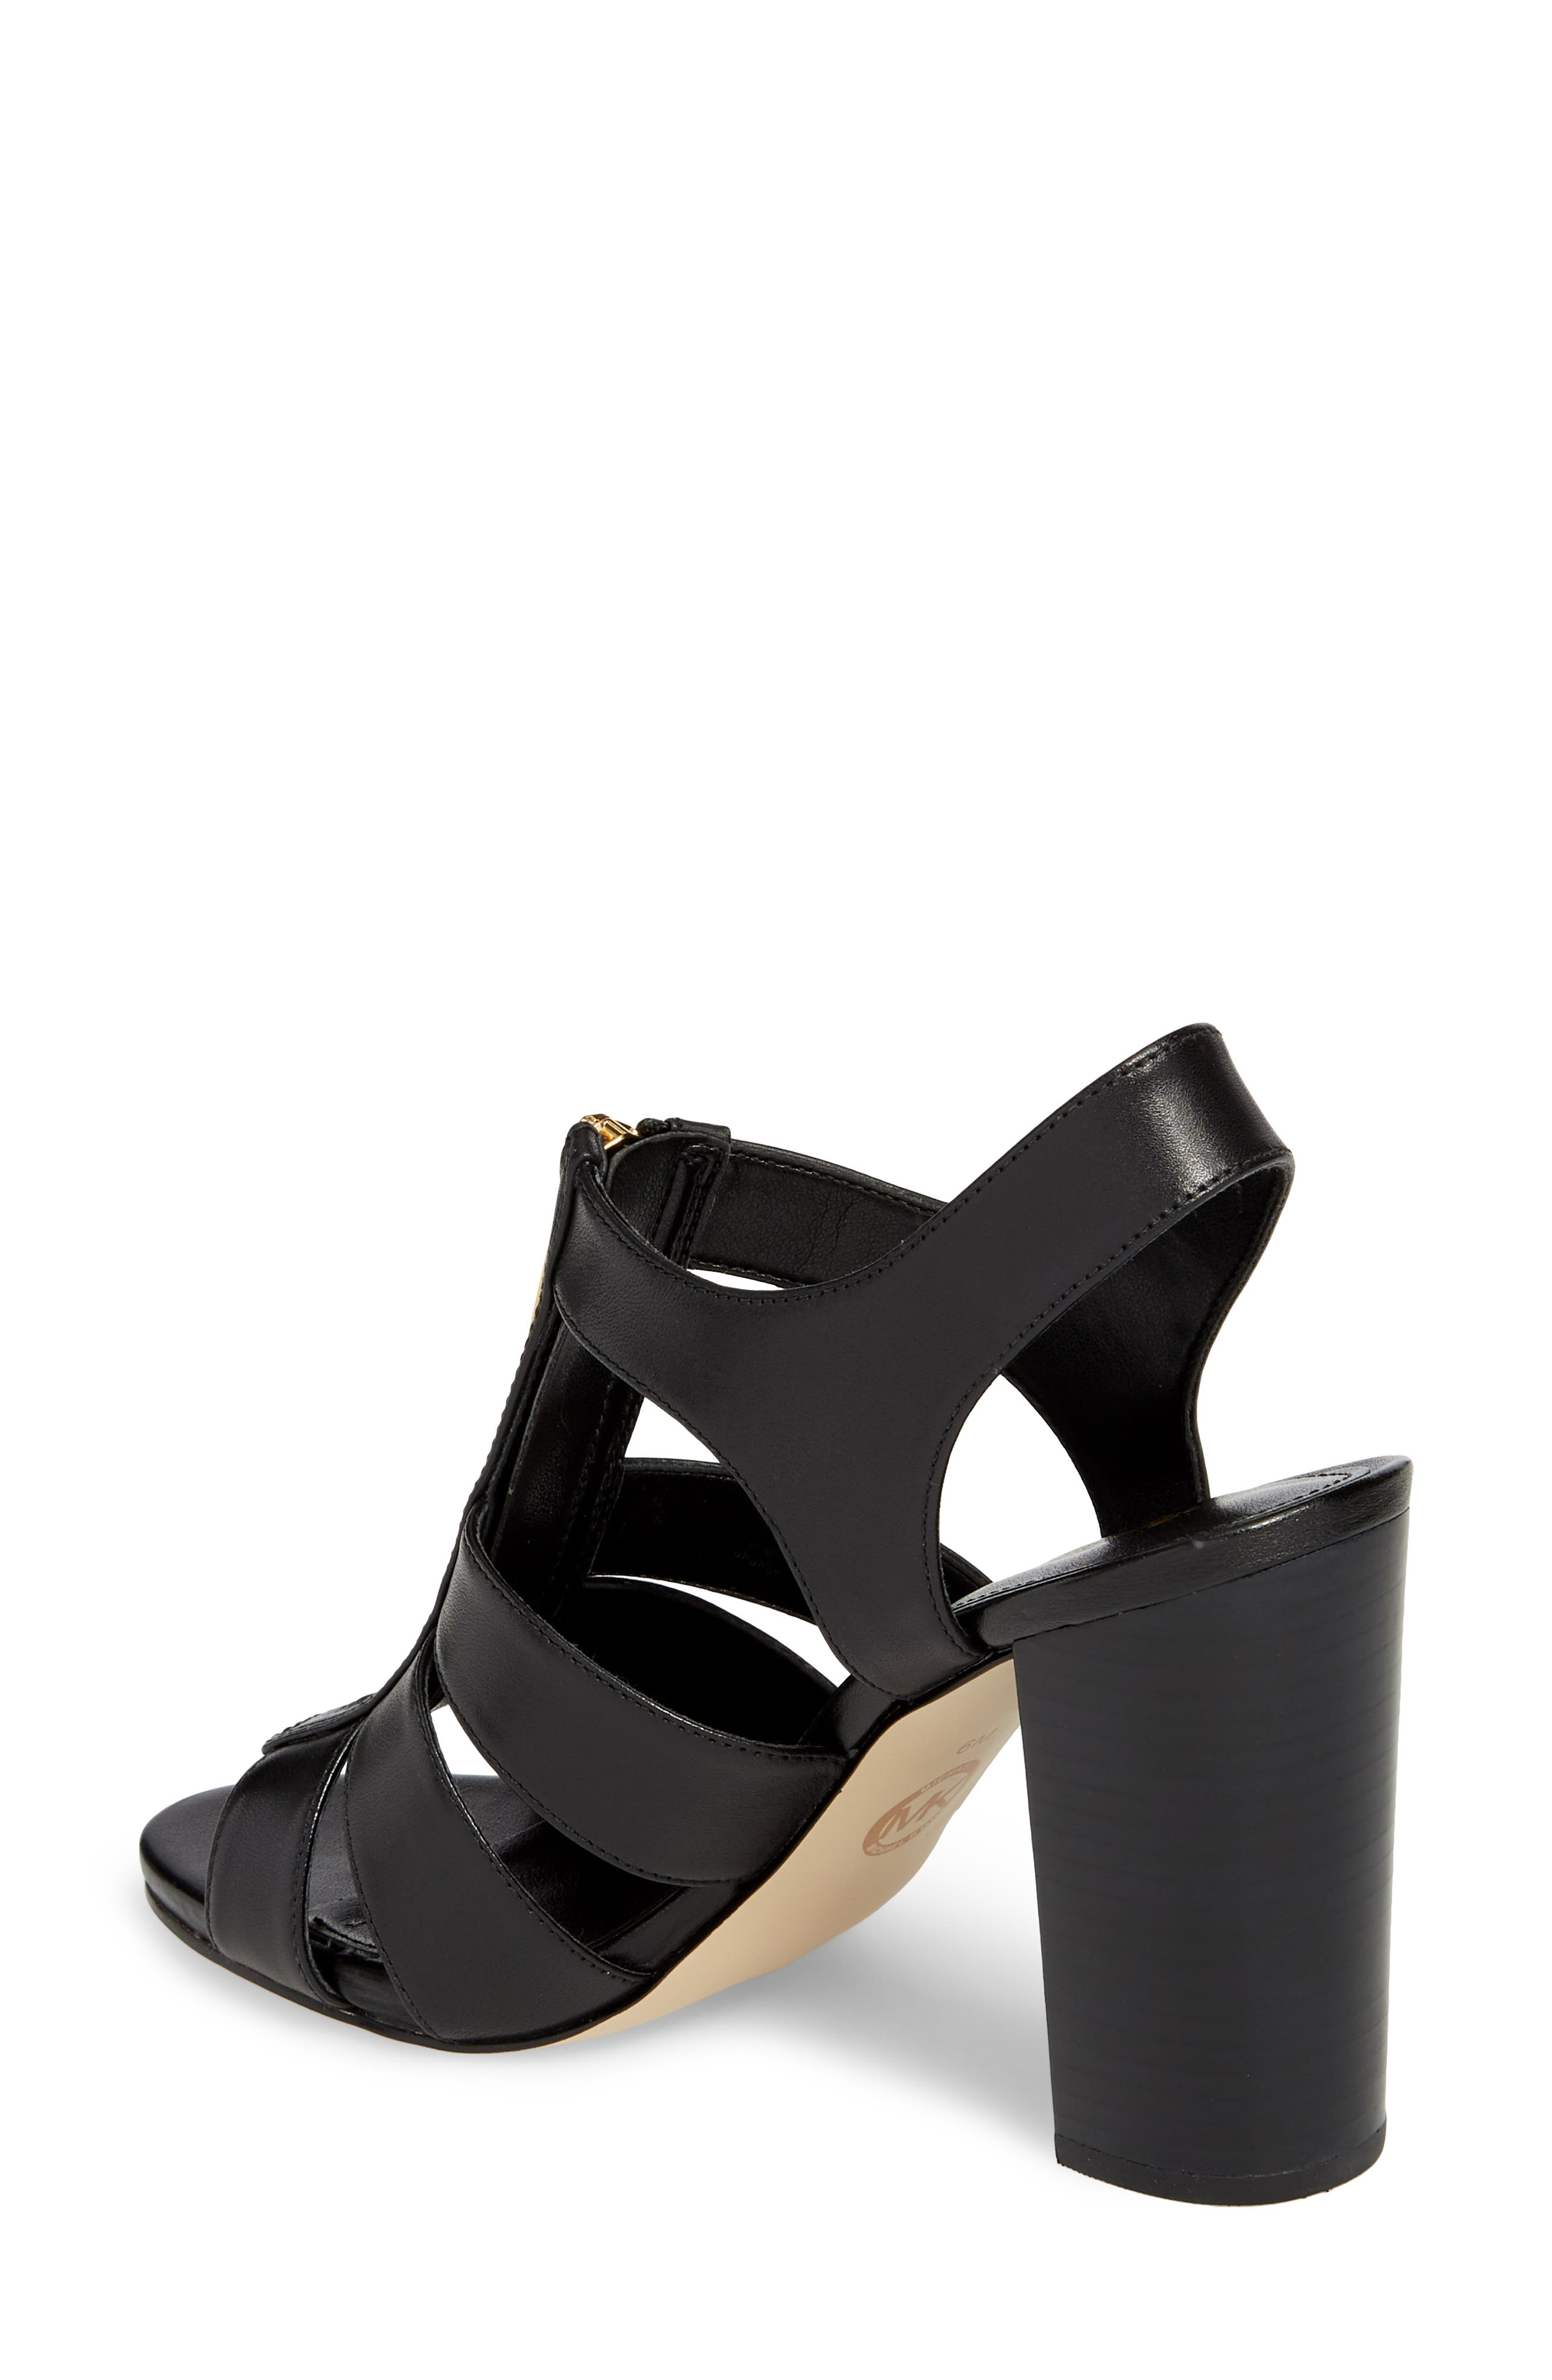 Damita Sandal,                             Alternate thumbnail 2, color,                             Black